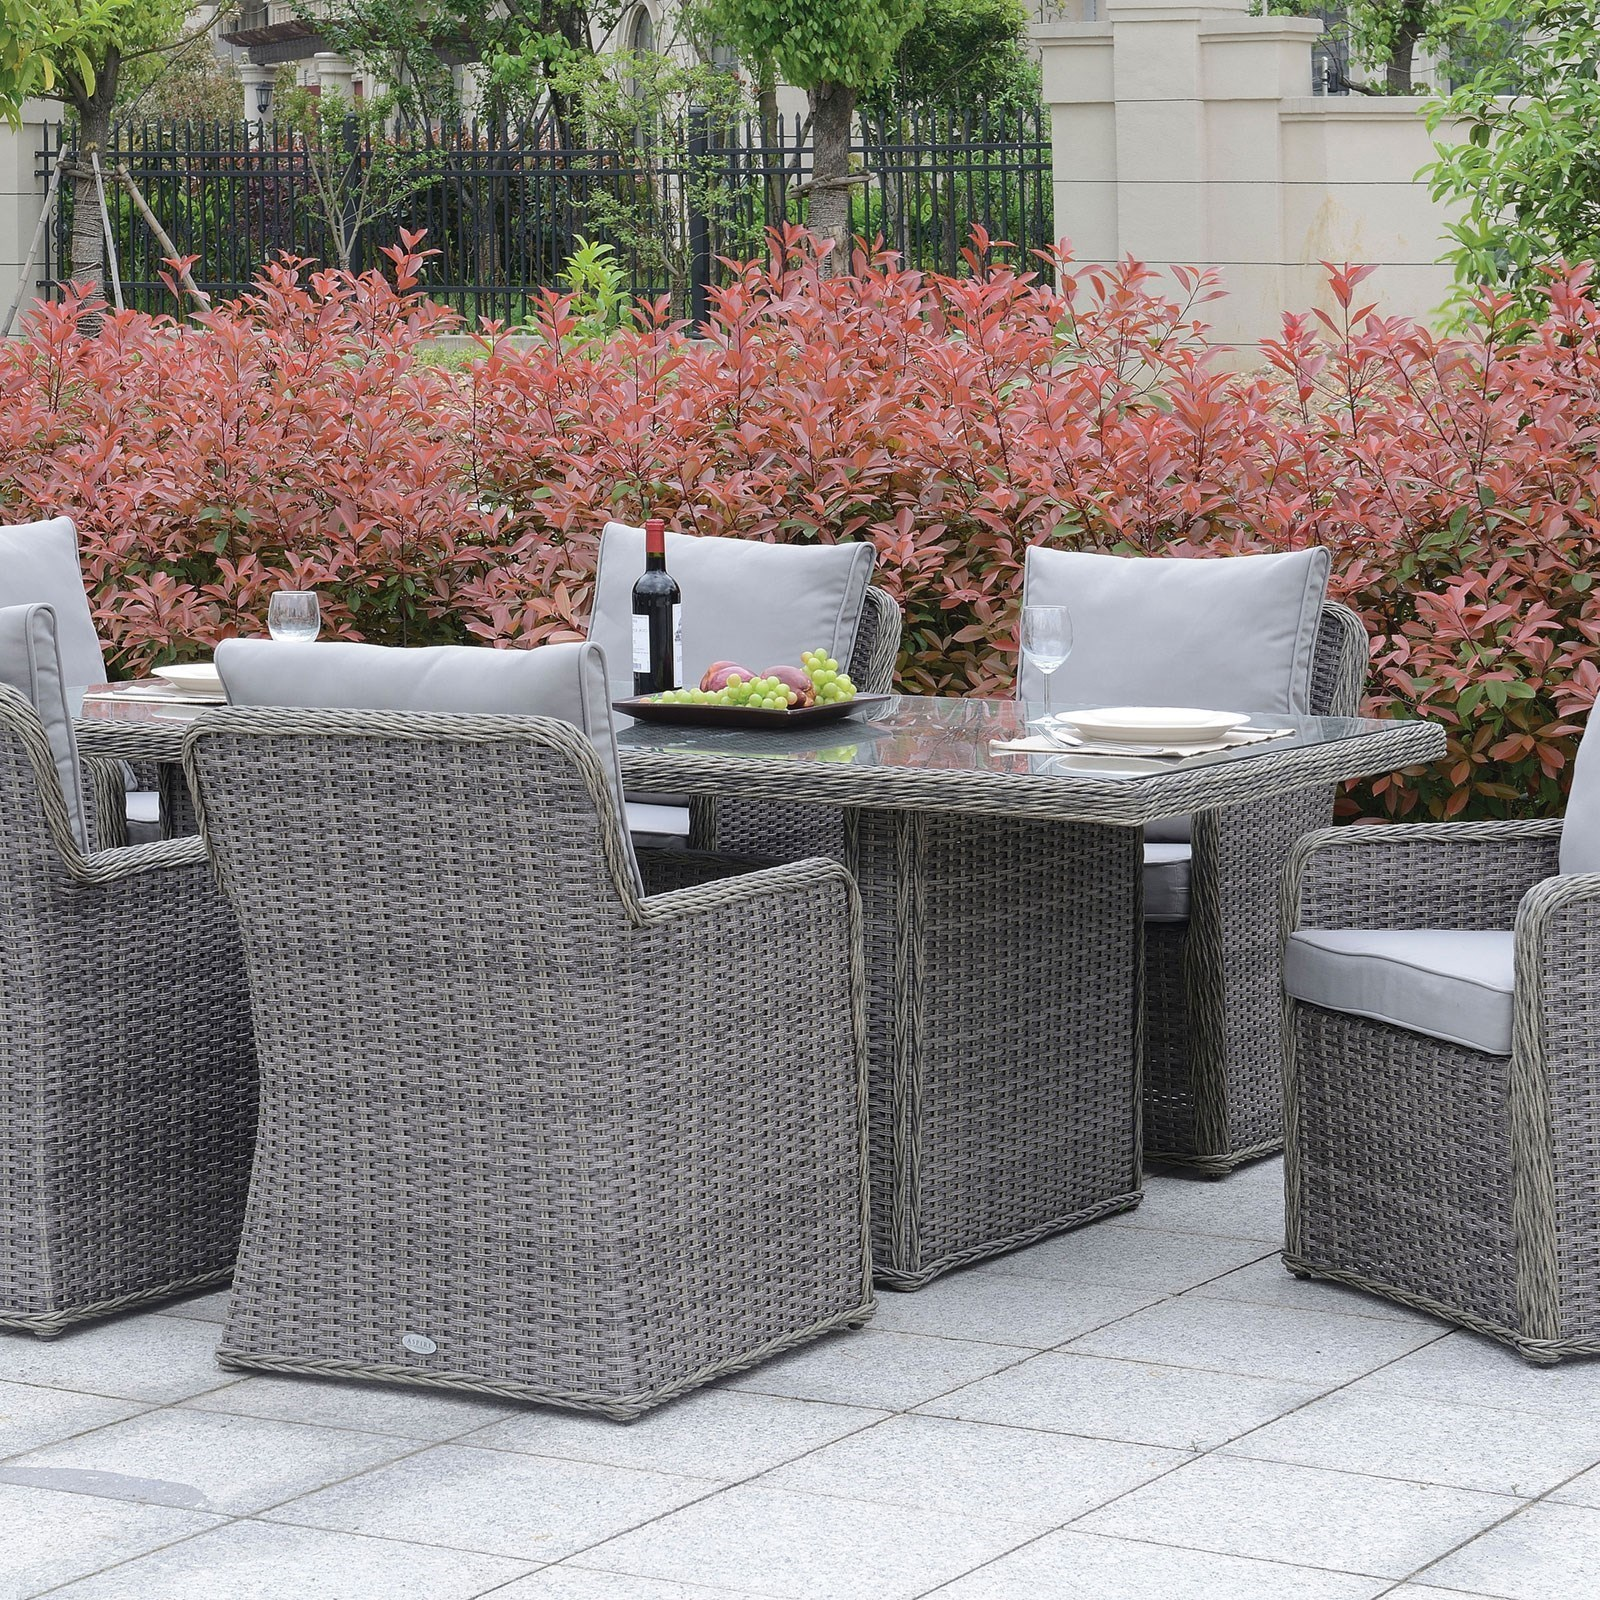 Furniture Of America Bowdon Cm Ot2221 T Gray Outdoor All Weather Wicker Dining Table With Tempered Glass Top Corner Furniture Outdoor Dining Table